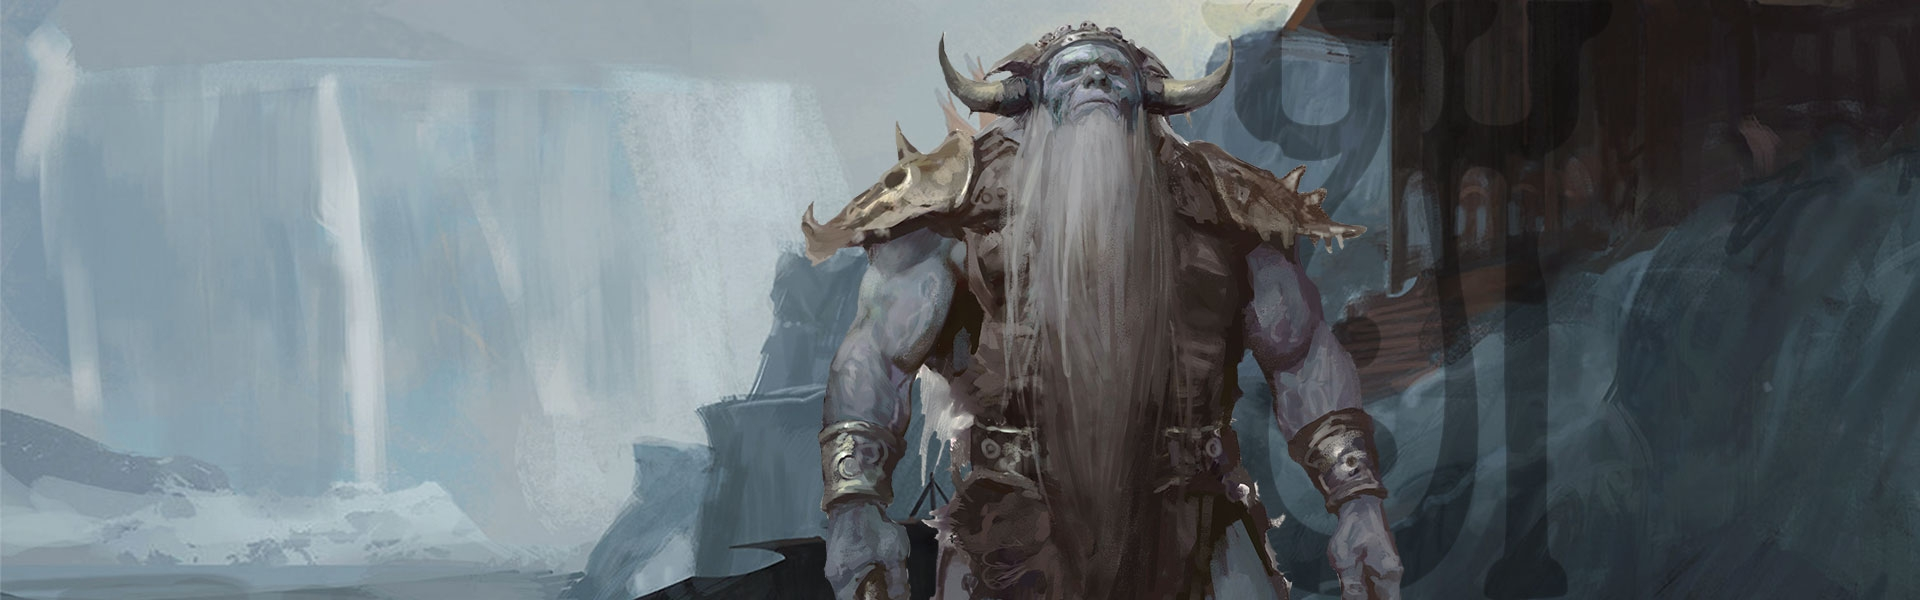 Monsters -- Frost Giants